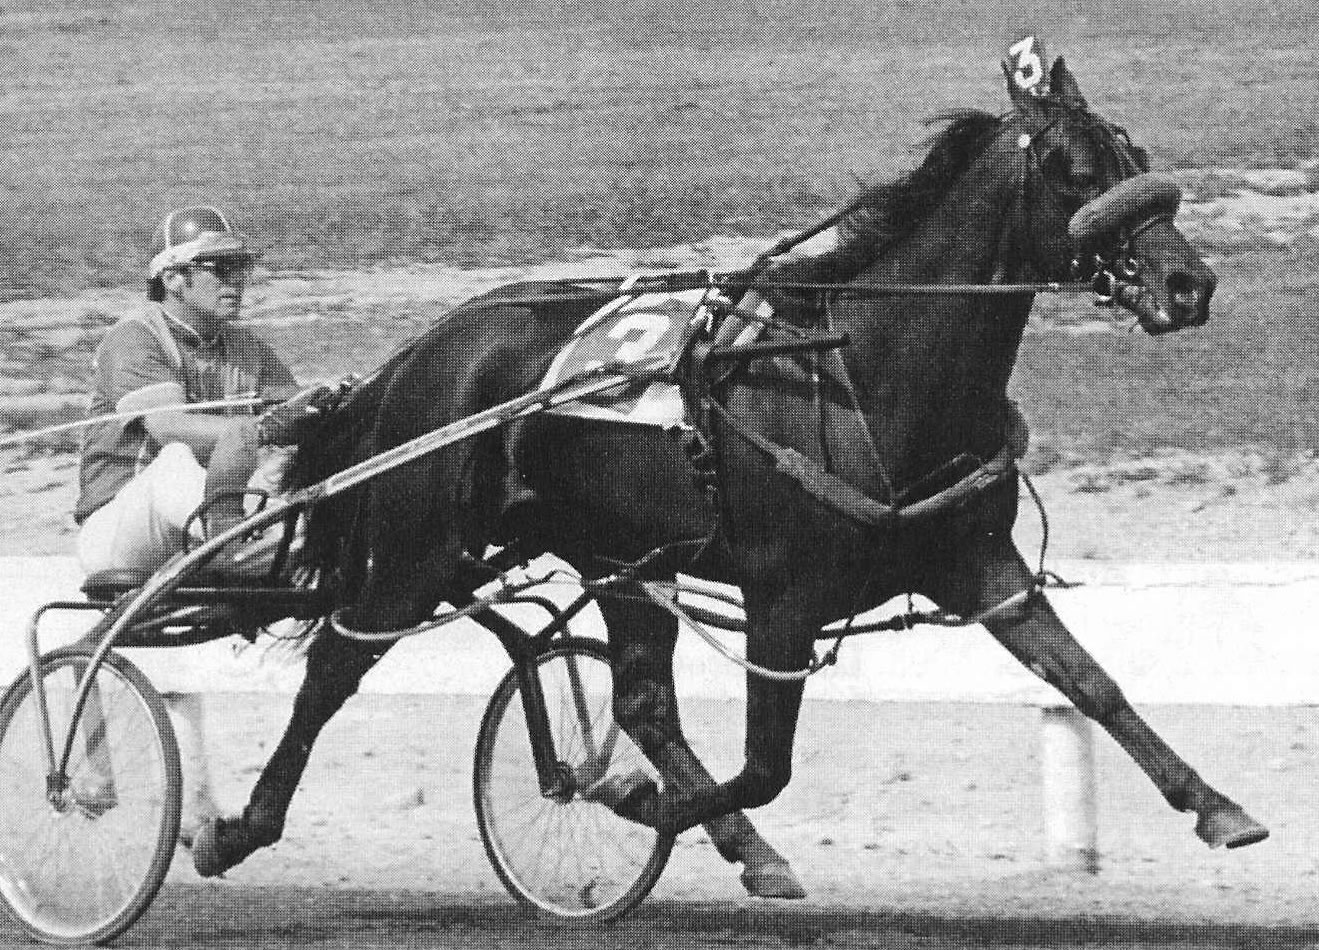 Abercrombie - Champion Standarbred Harness Race Horse